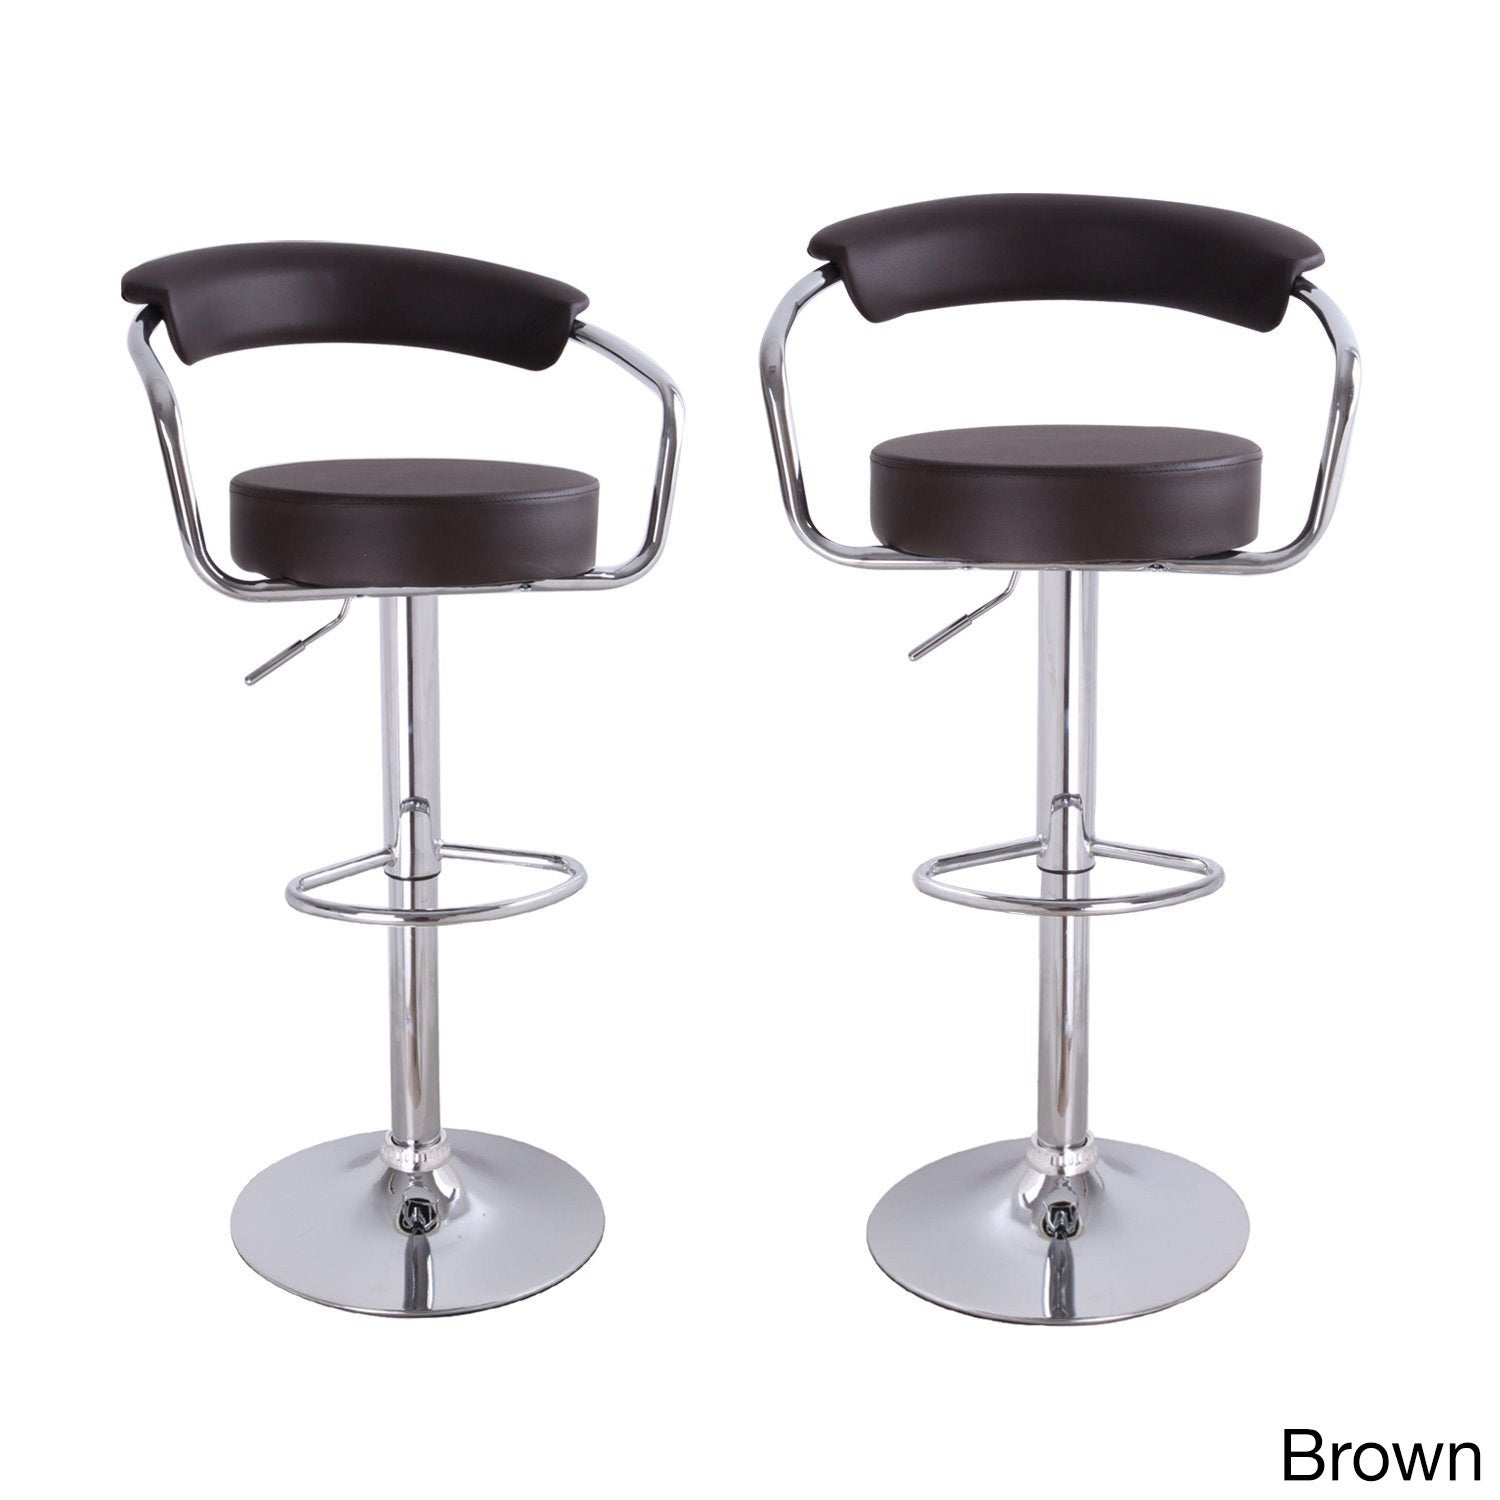 Adeco Modern Adjustable Hydraulic Lift Barstool Chair (Se...